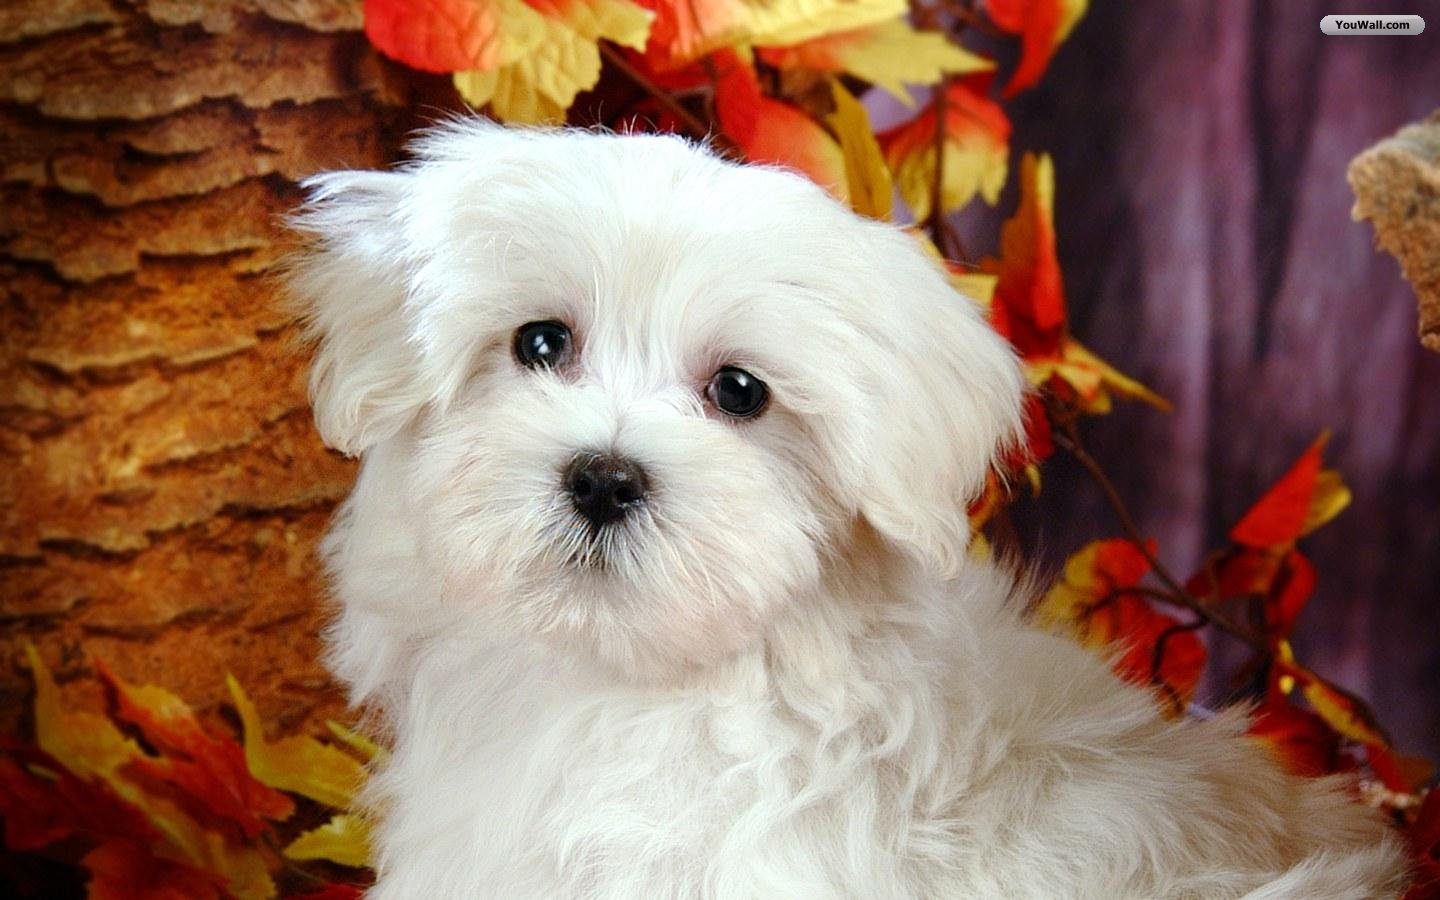 Funny Animals: Cute White Dogs